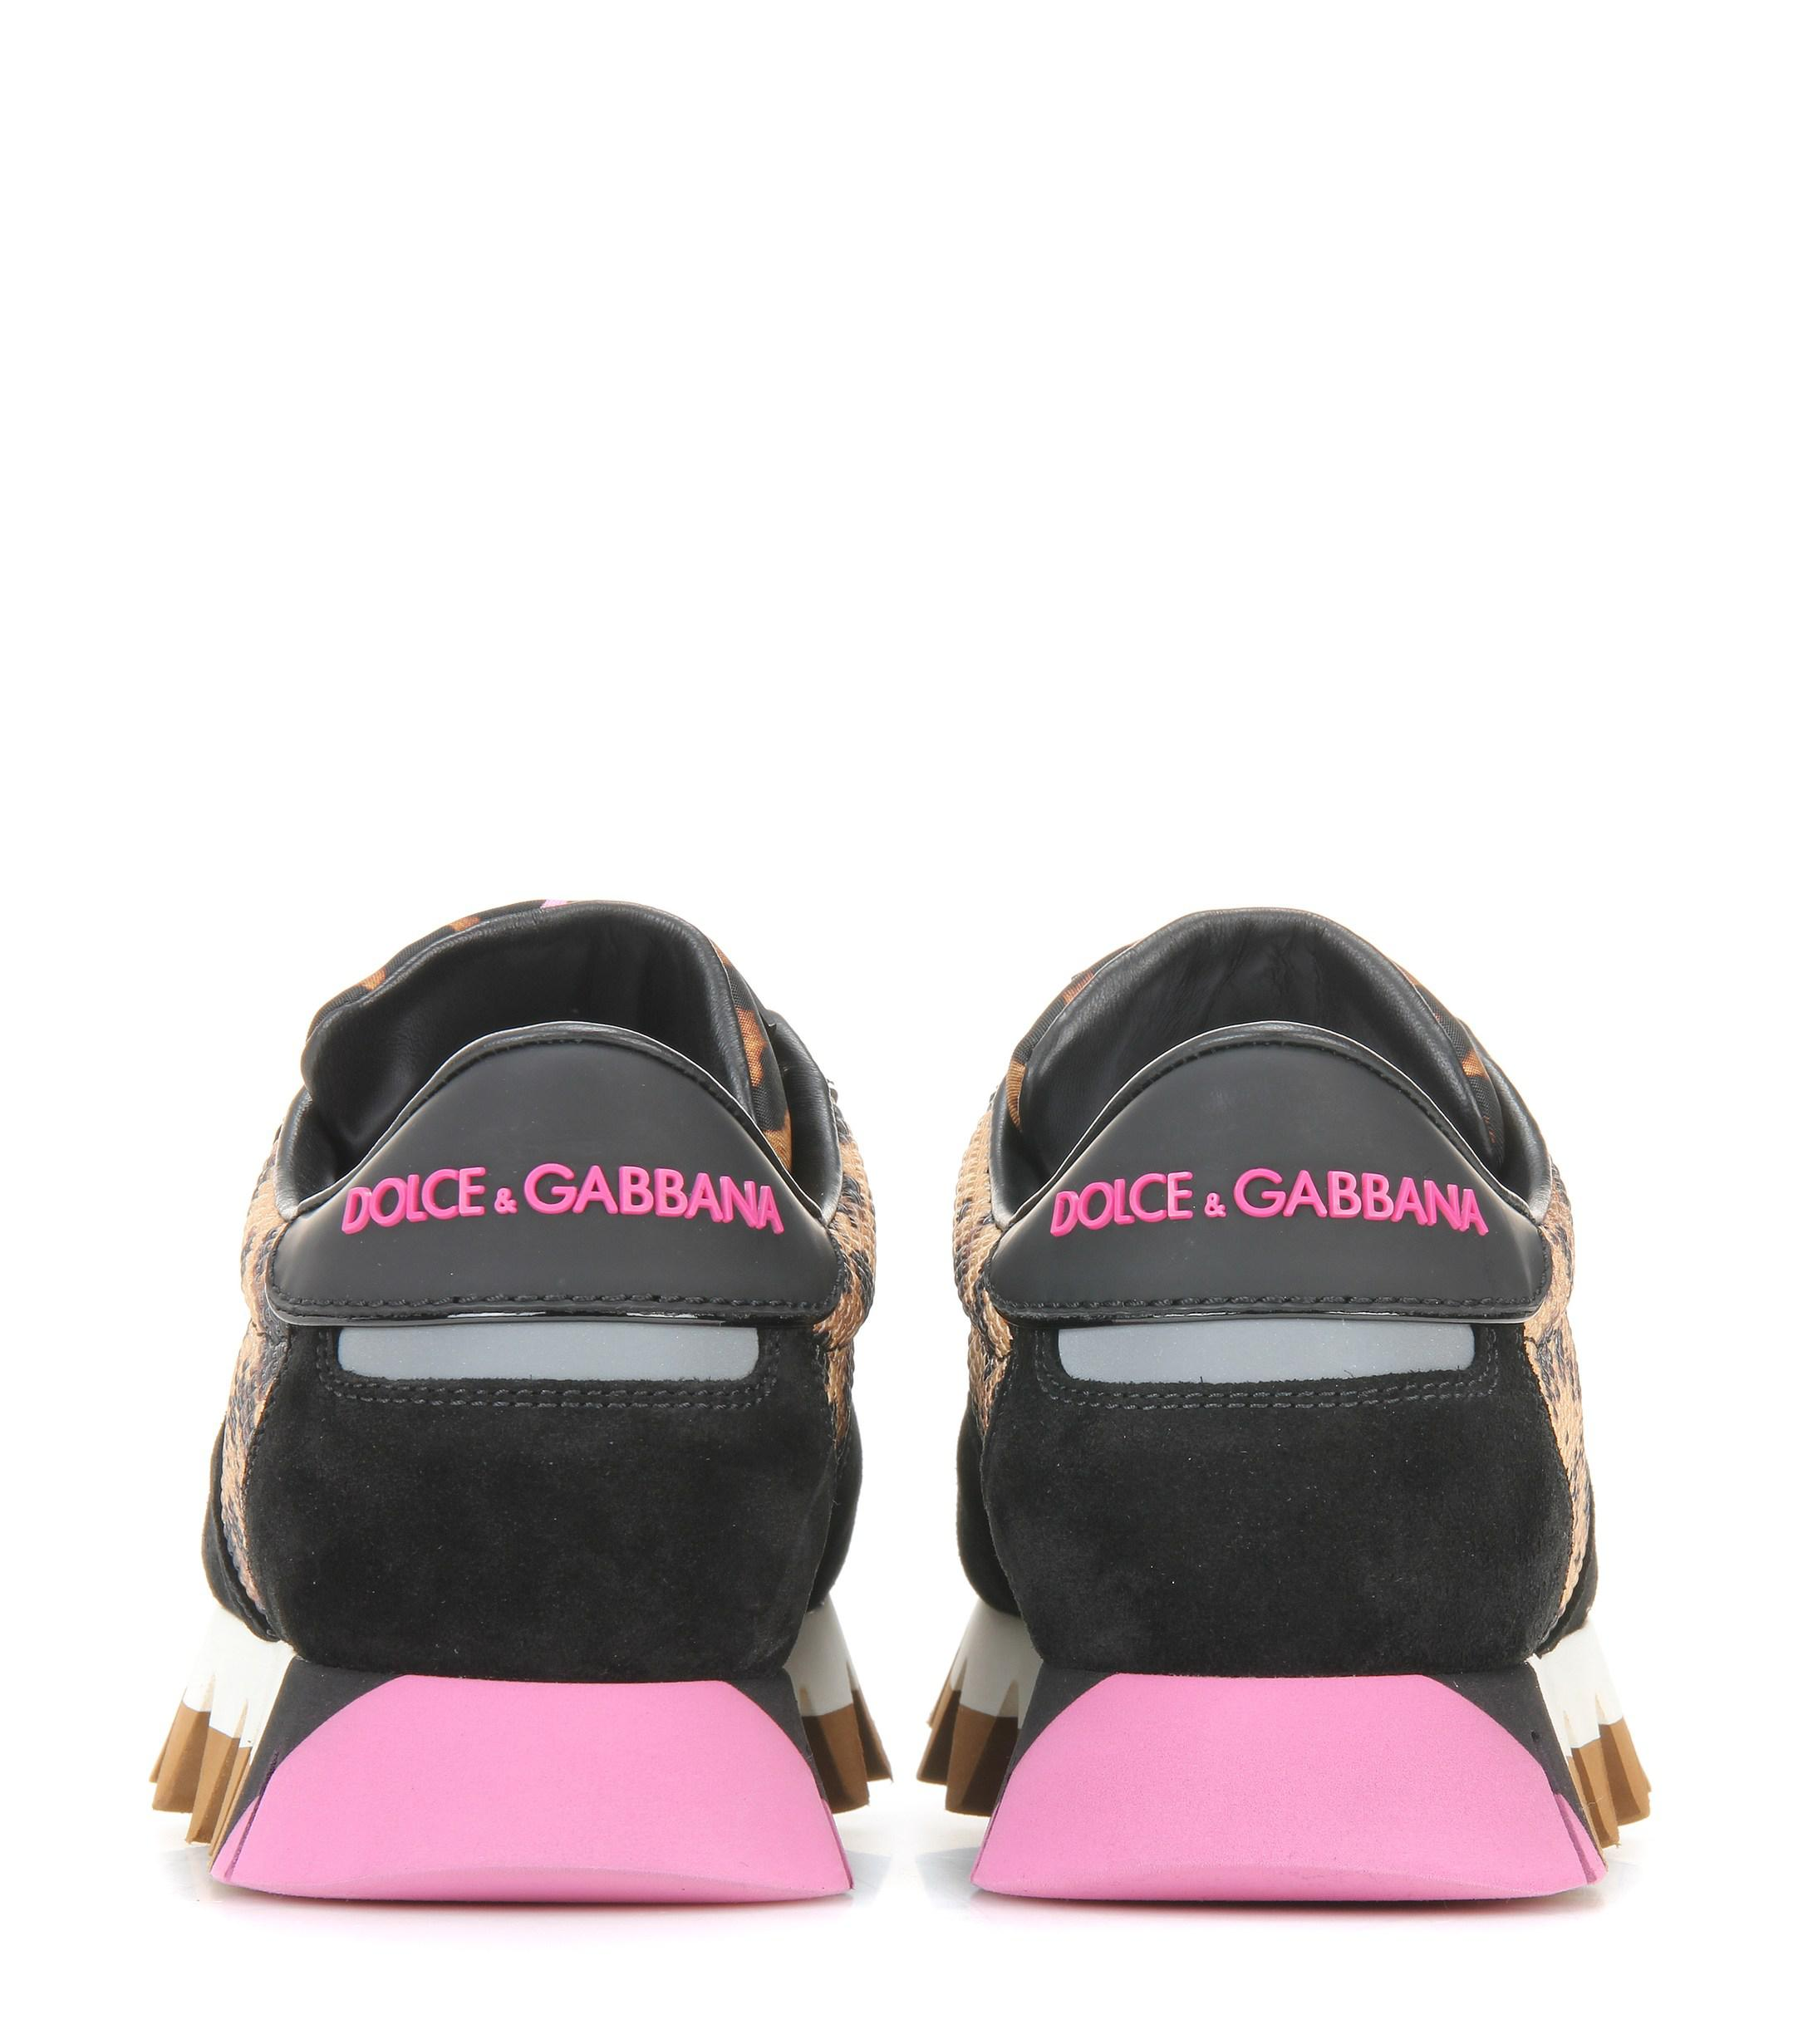 Dolce & Gabbana Fabric And Suede Sneakers